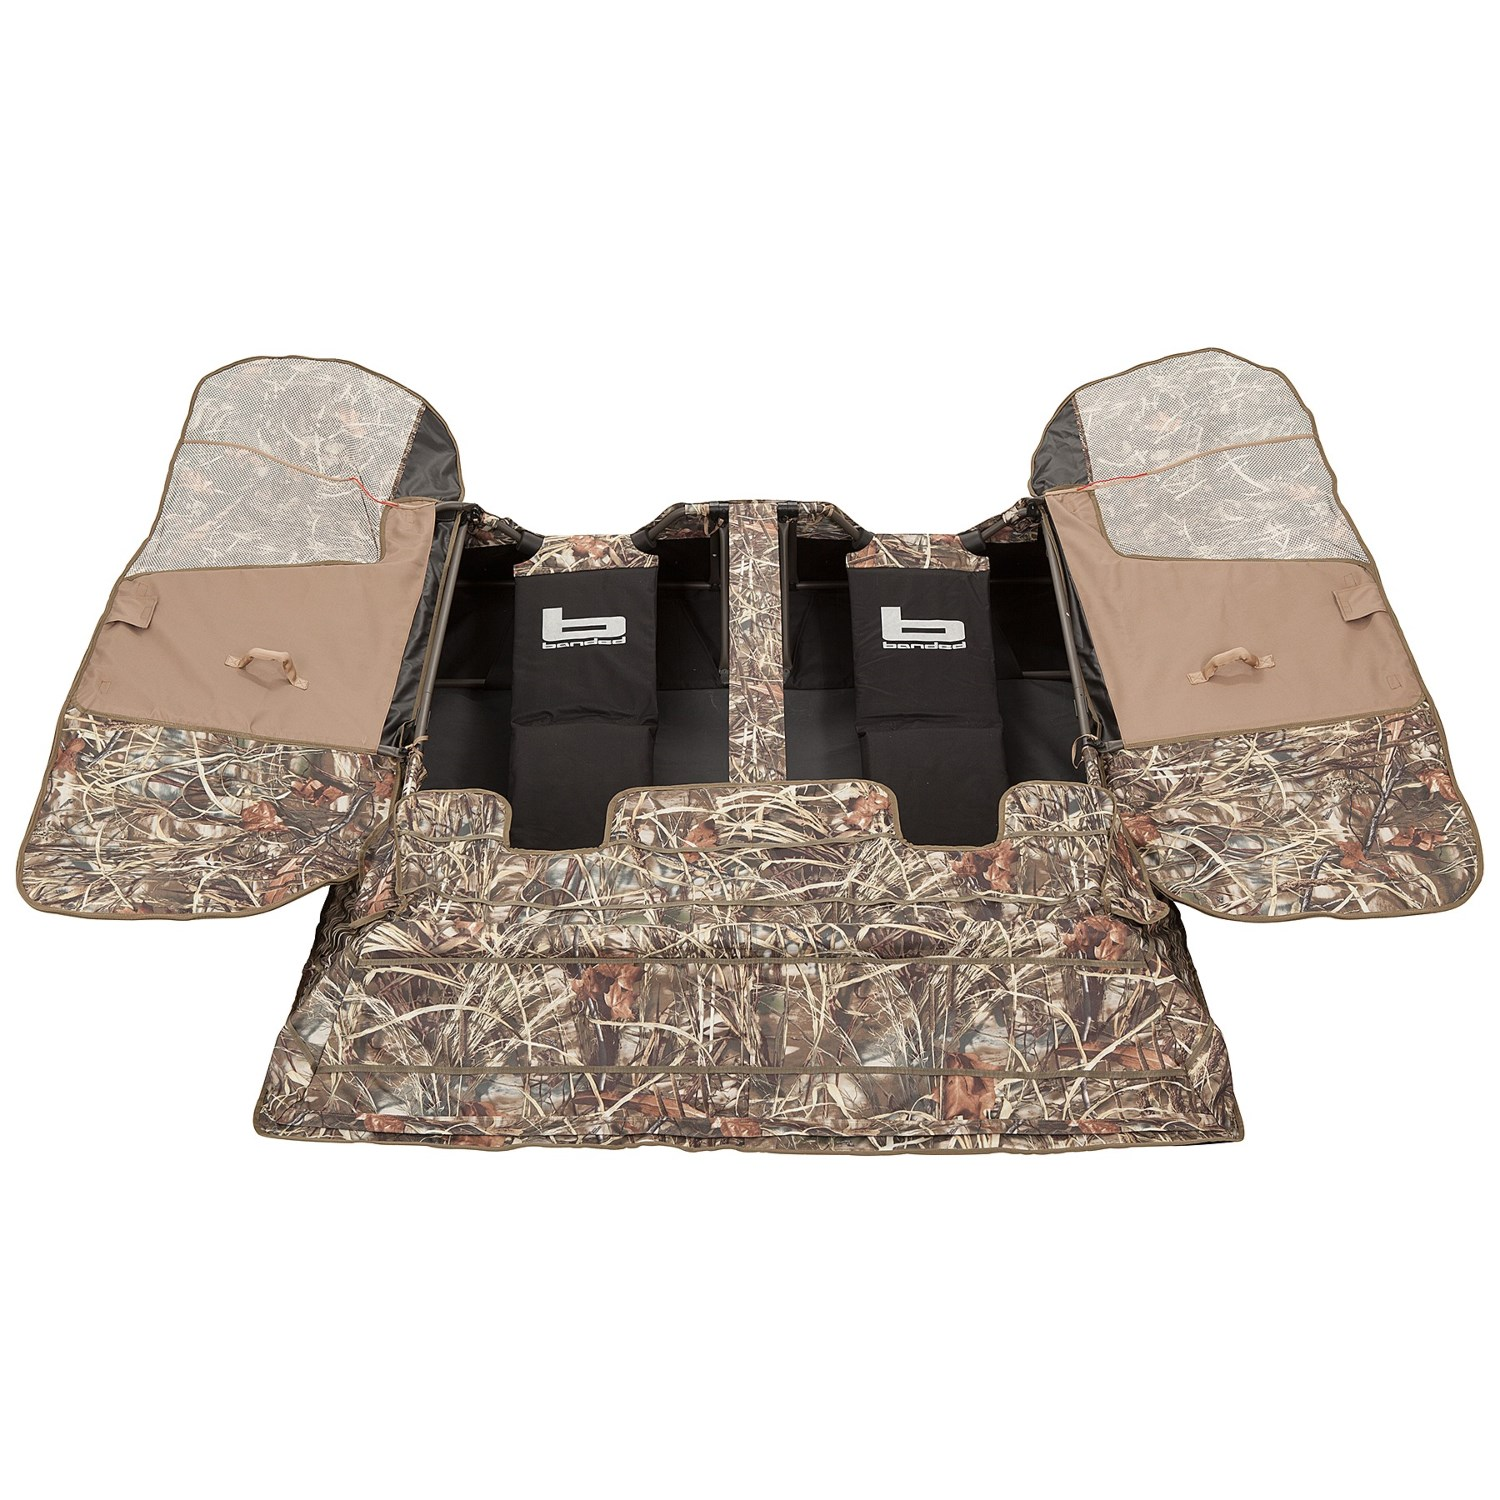 field hunting easy of full and set hub camouflage blind wide for window up person through pop ground blinds windows durability size style view shoot